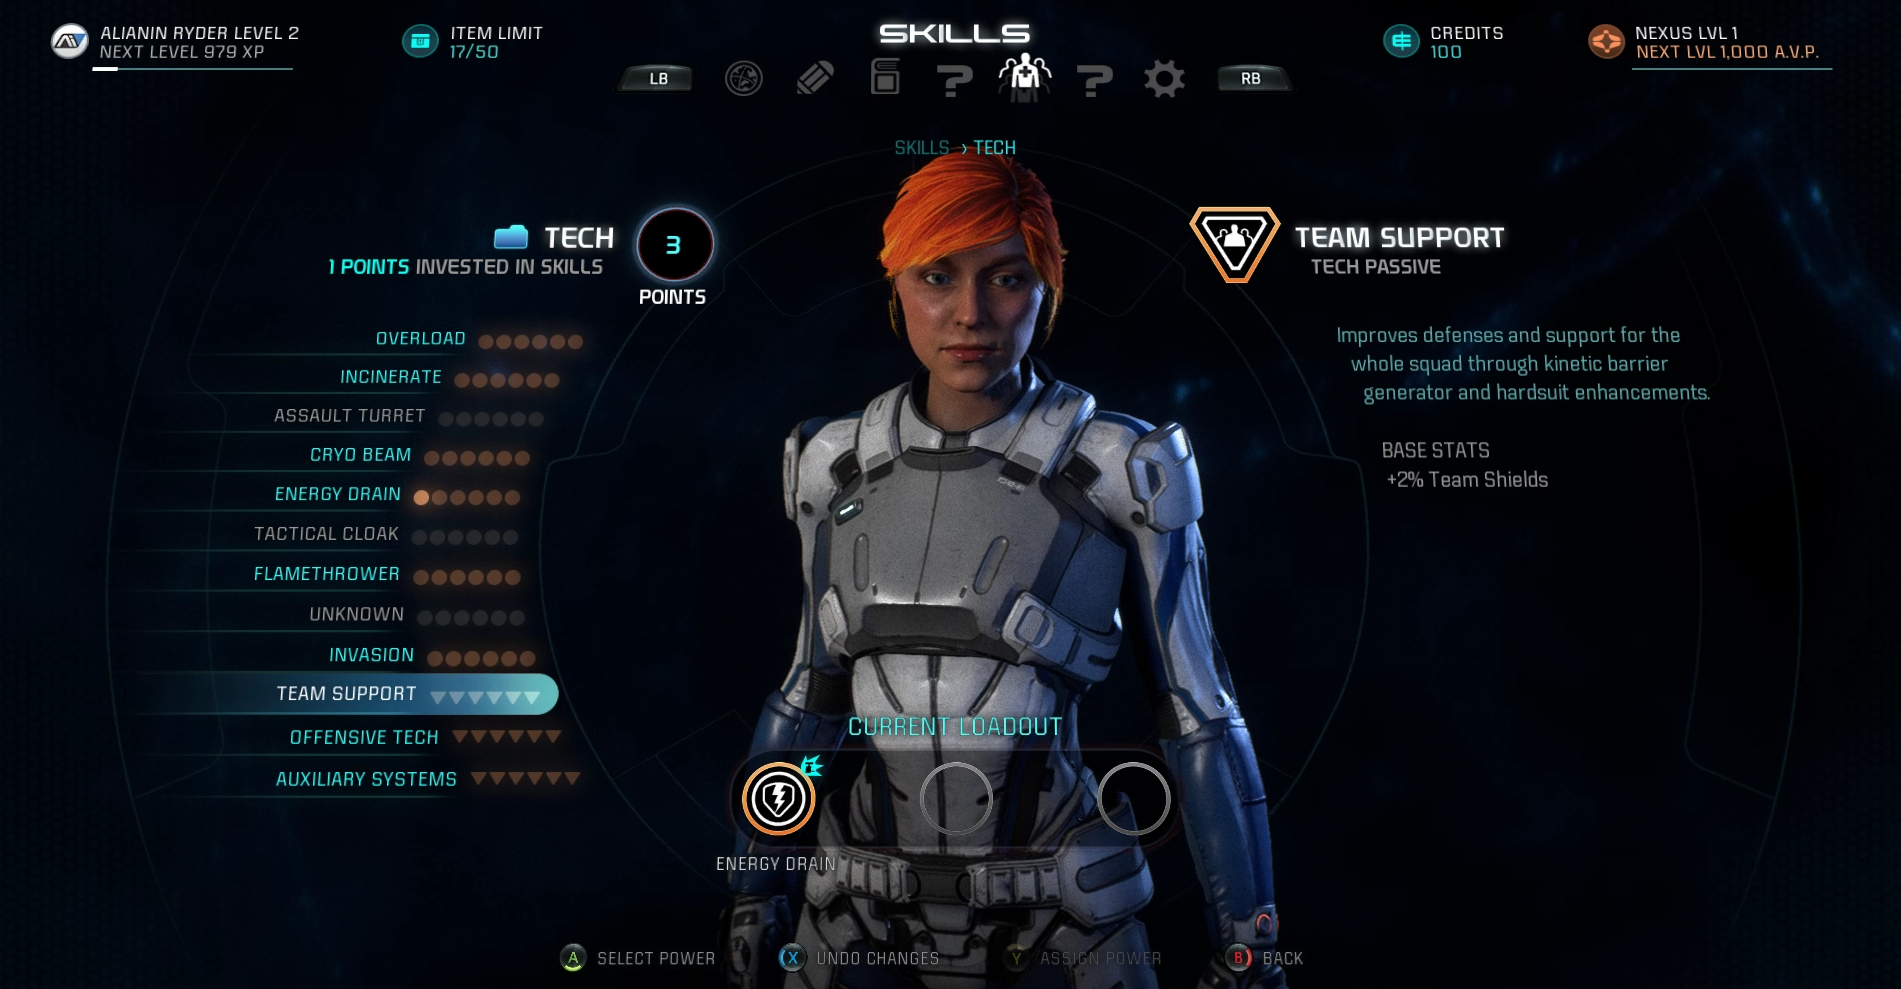 Mass Effect: Andromeda - Tech Skills